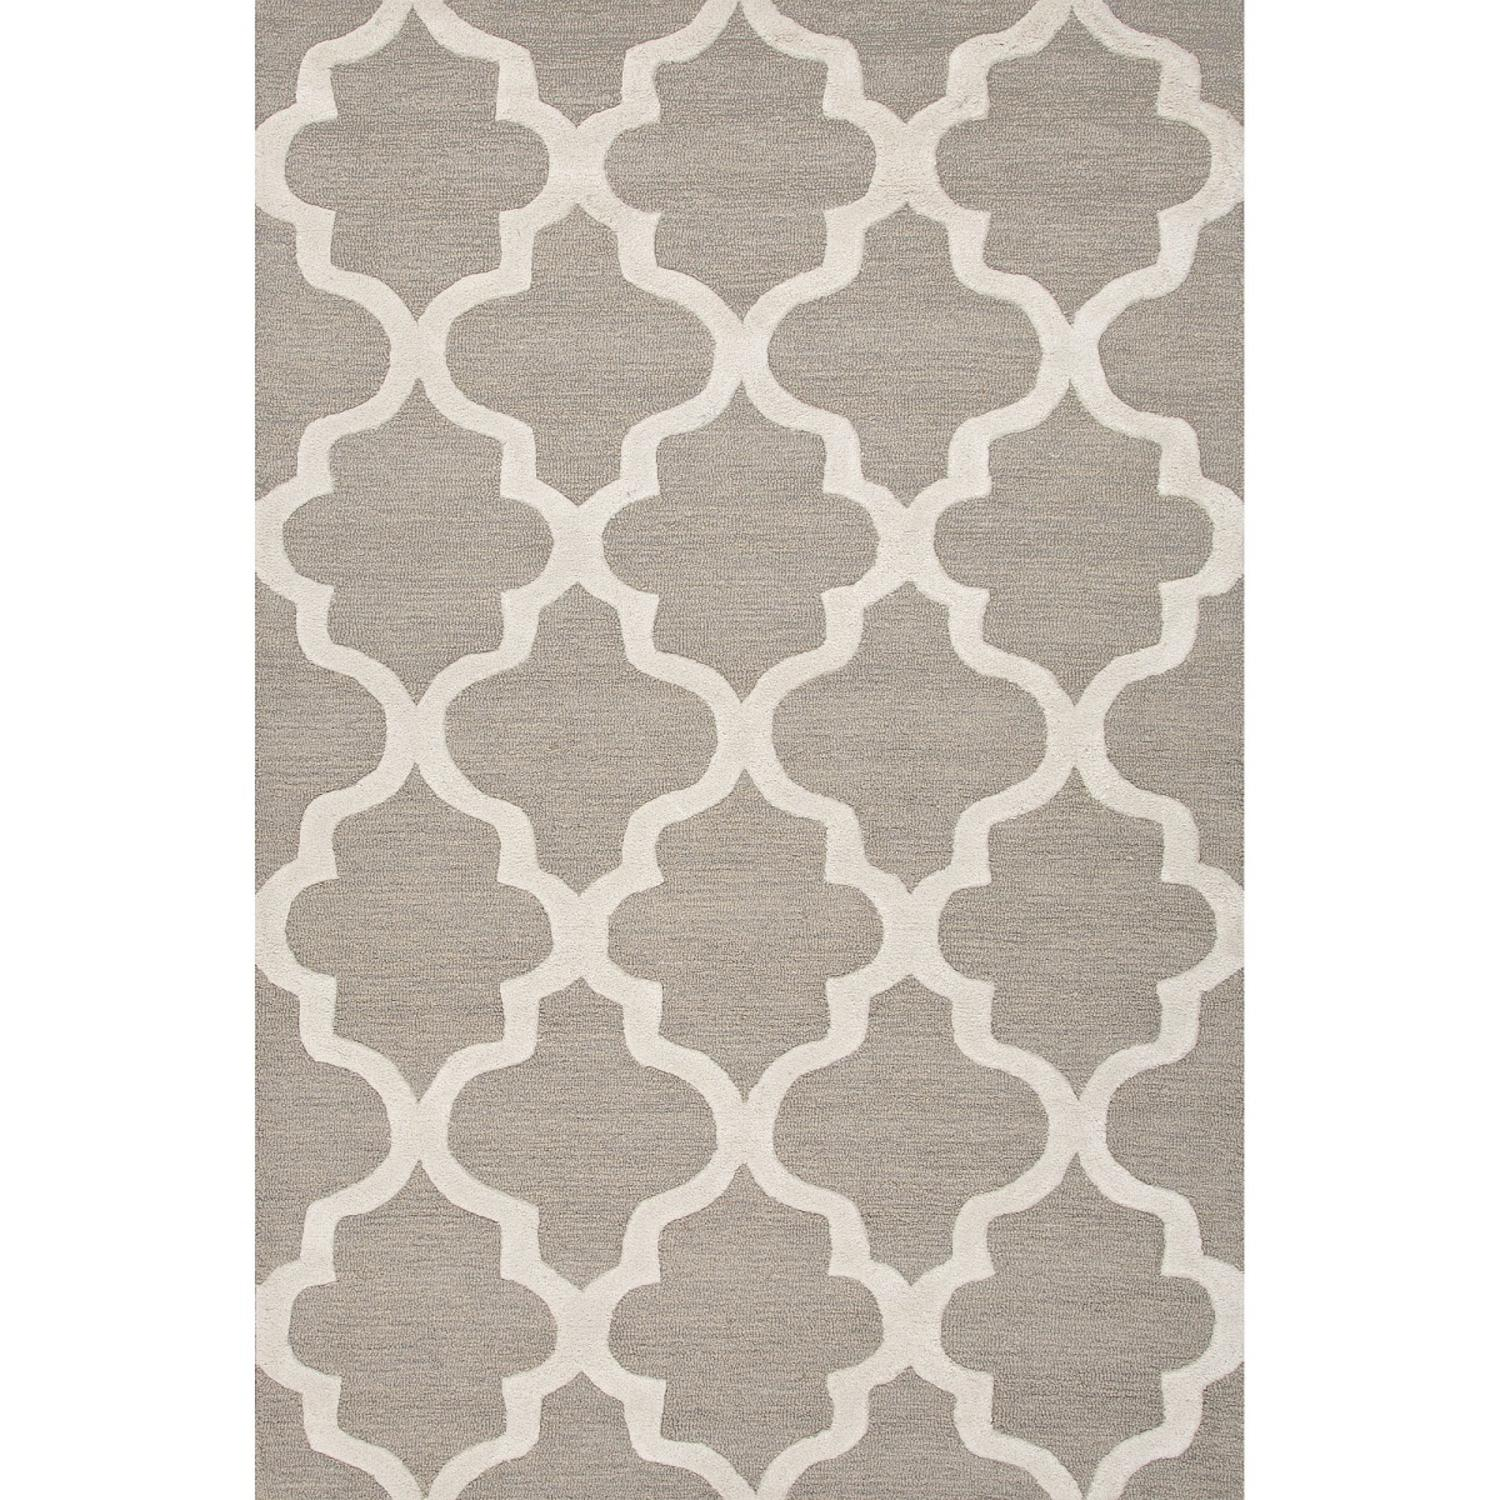 8' x 11' Stone Gray and Snow White Modern Miami Hand Tufted Wool Area Throw Rug